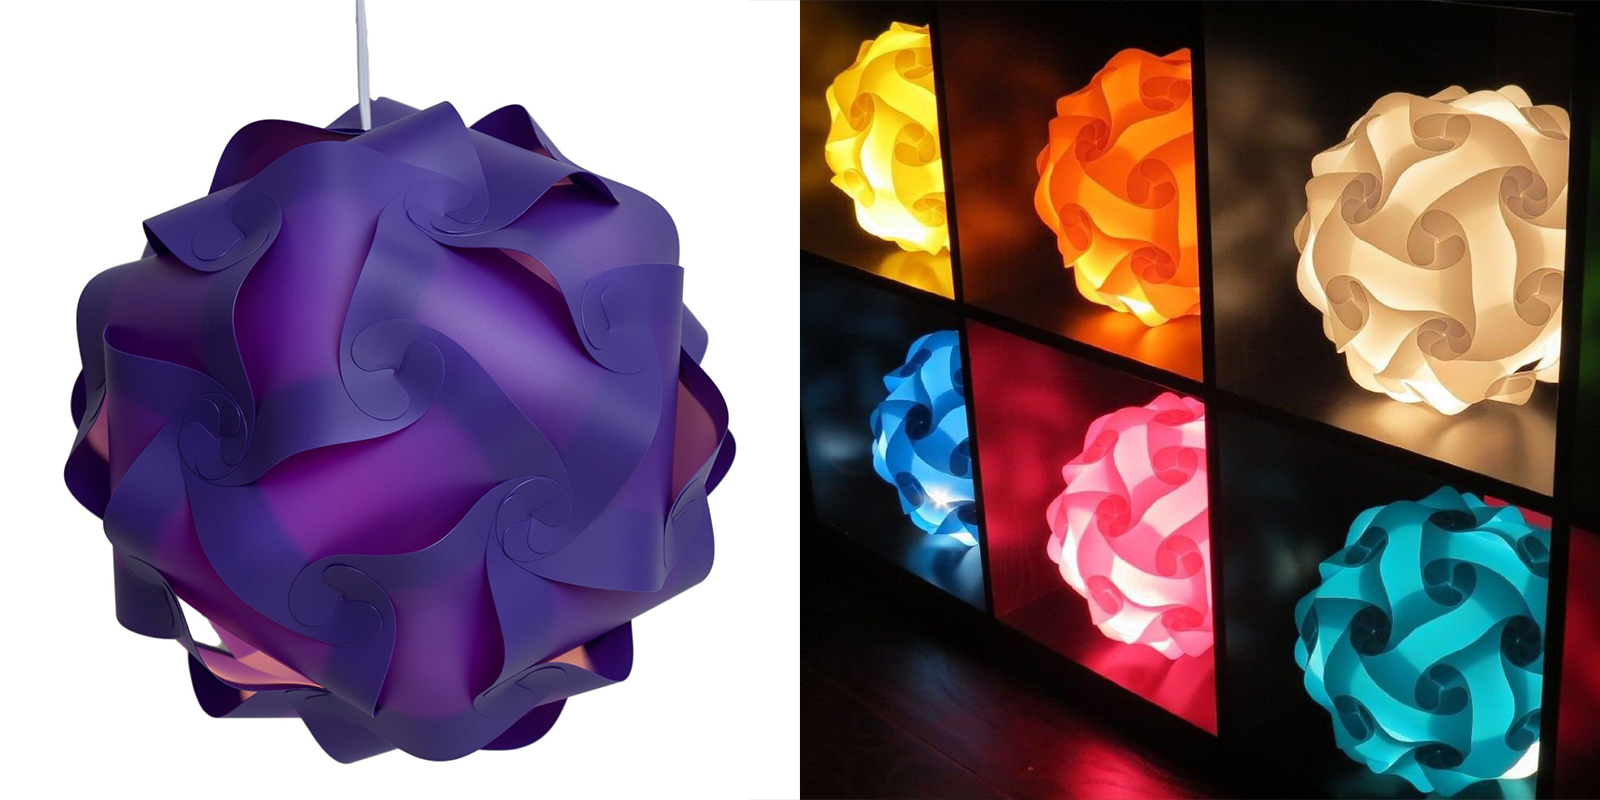 Niki Nu Lites Puzzle Lamp in Various Colors